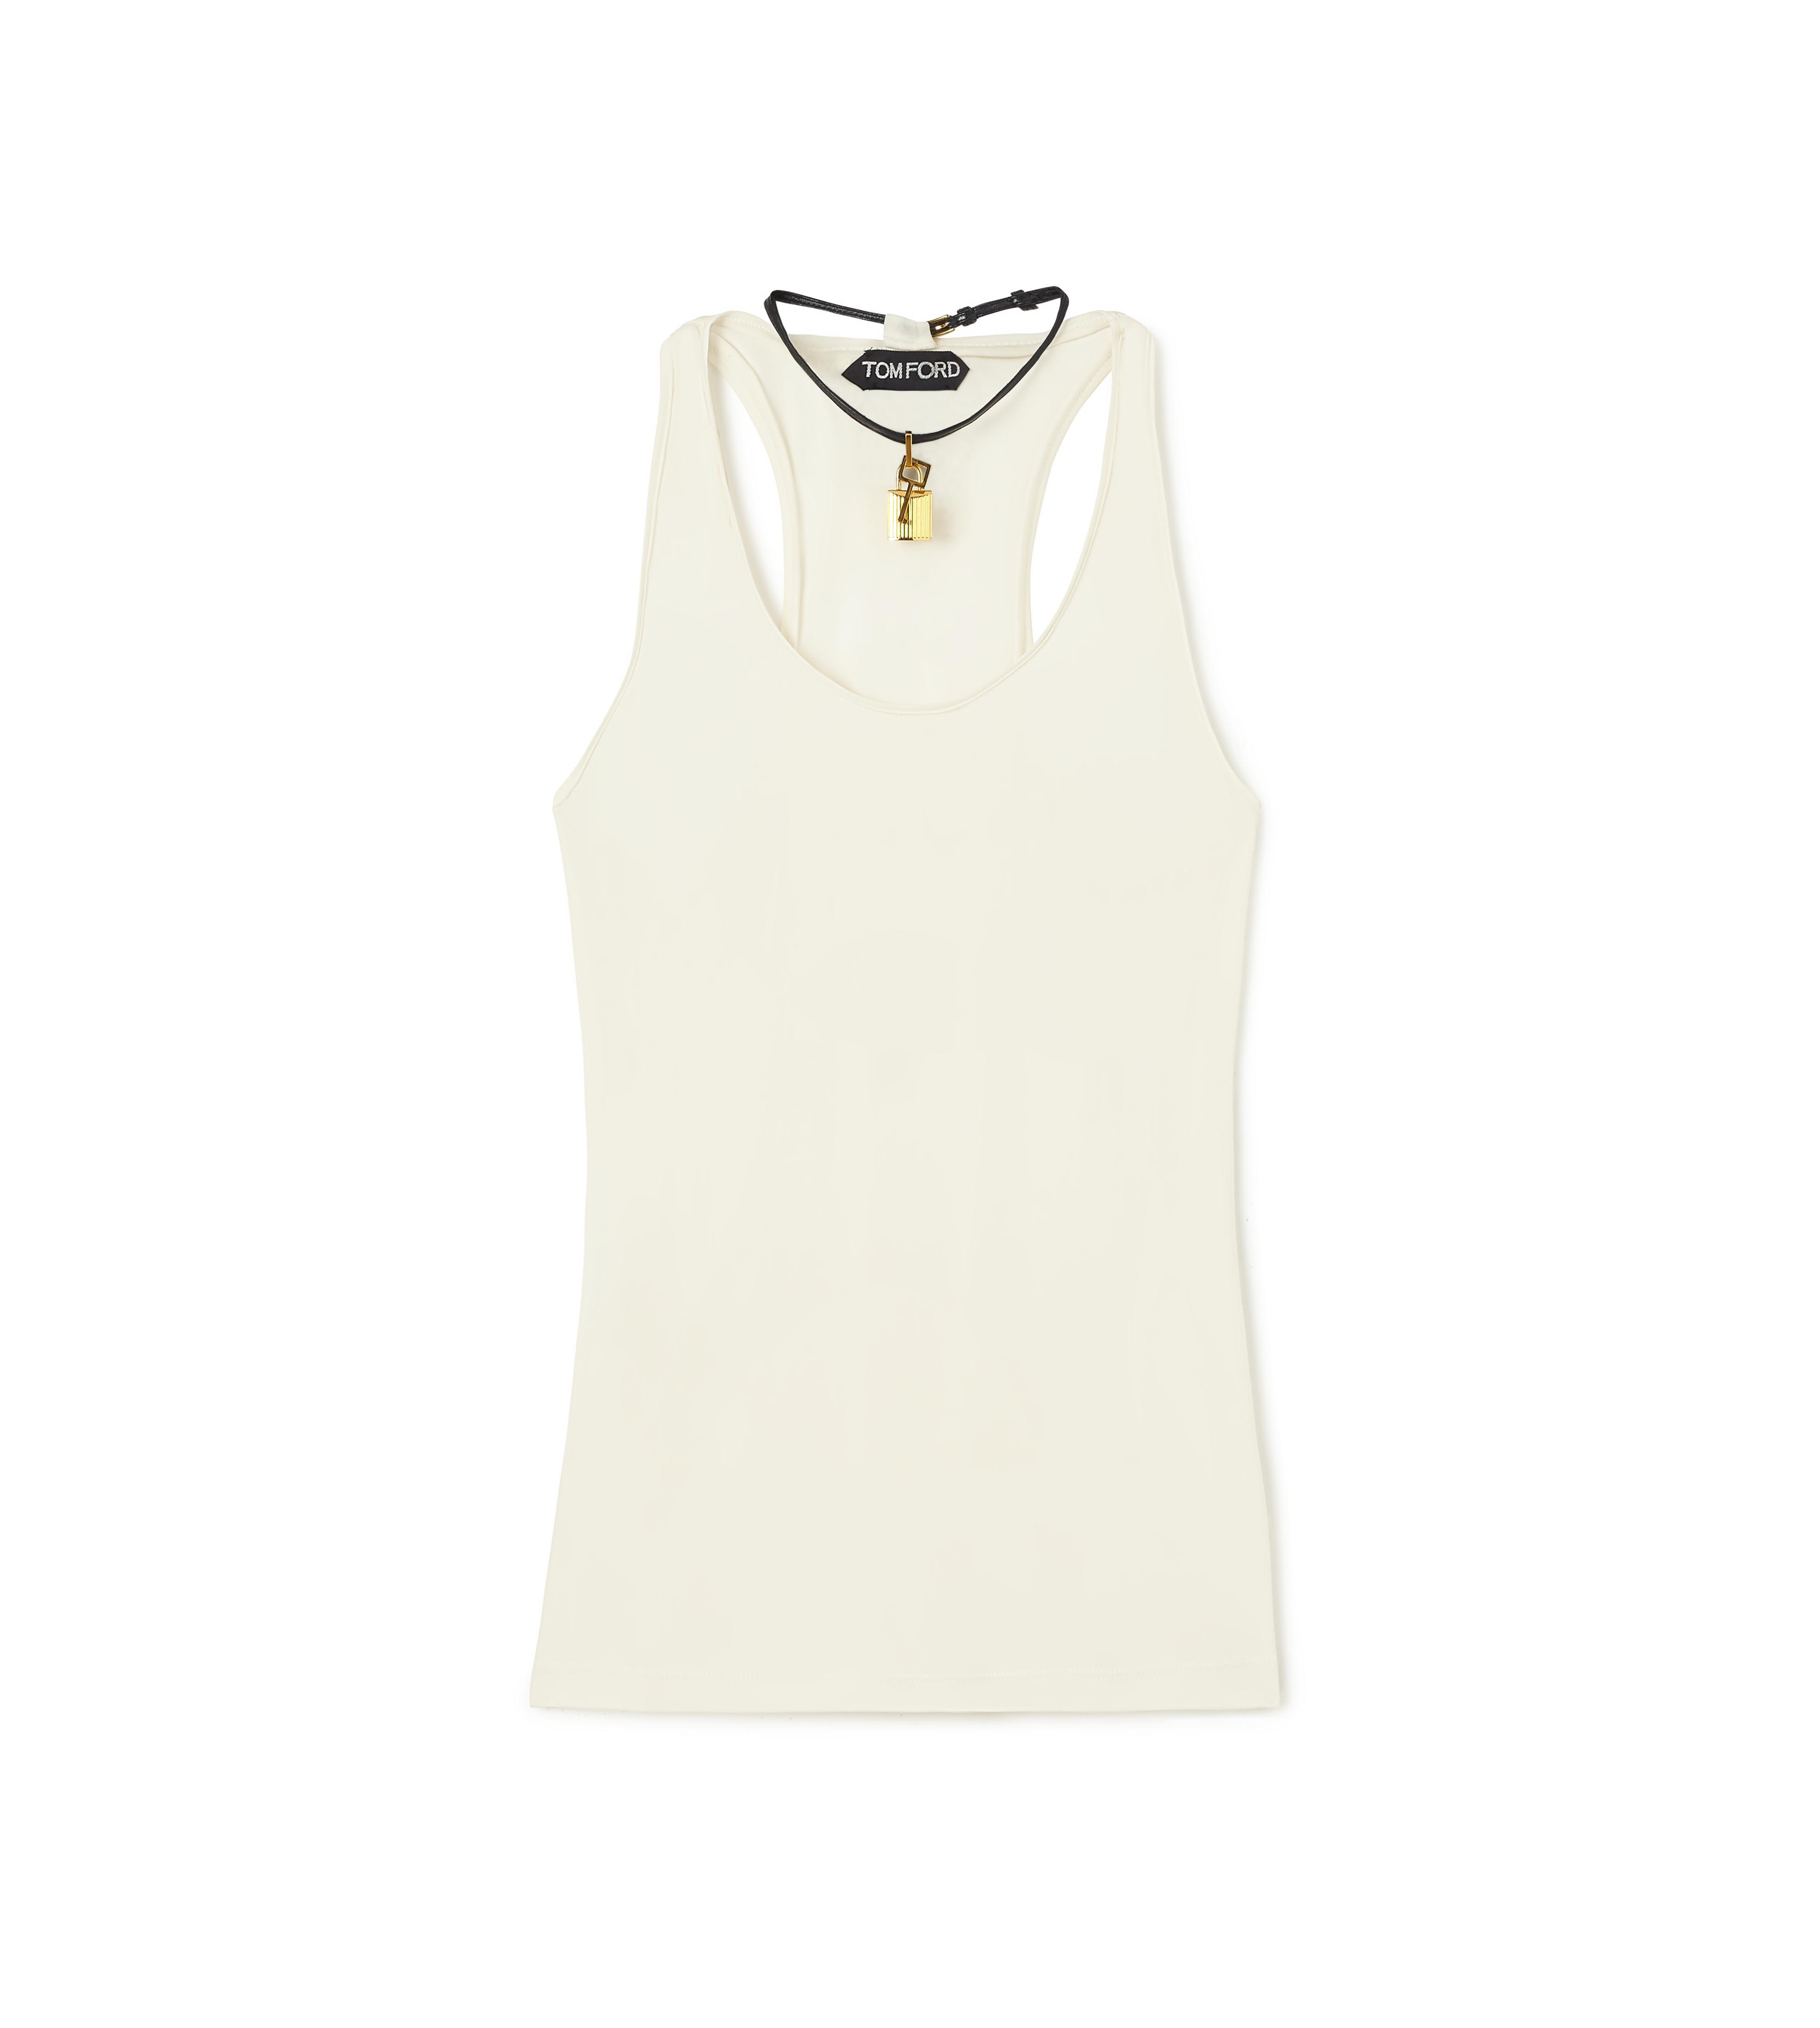 SCOOP NECK TANK TOP WITH PADLOCK ON LEATHER NECKLACE A thumbnail